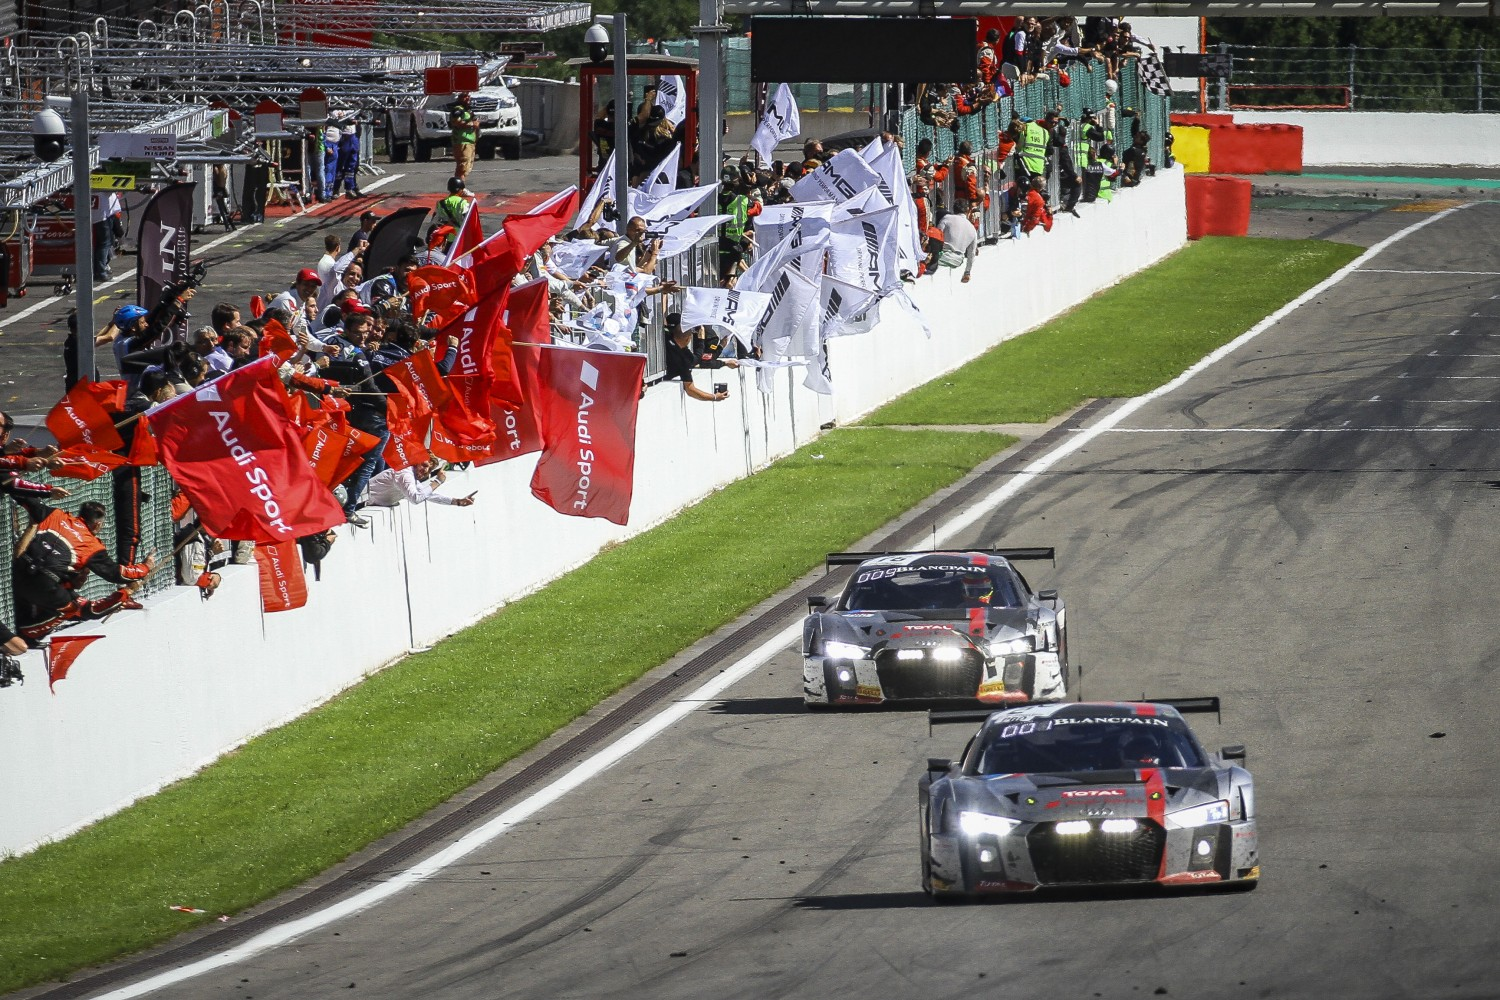 Saintéloc Racing to defend Total 24 Hours of Spa victory in 2018